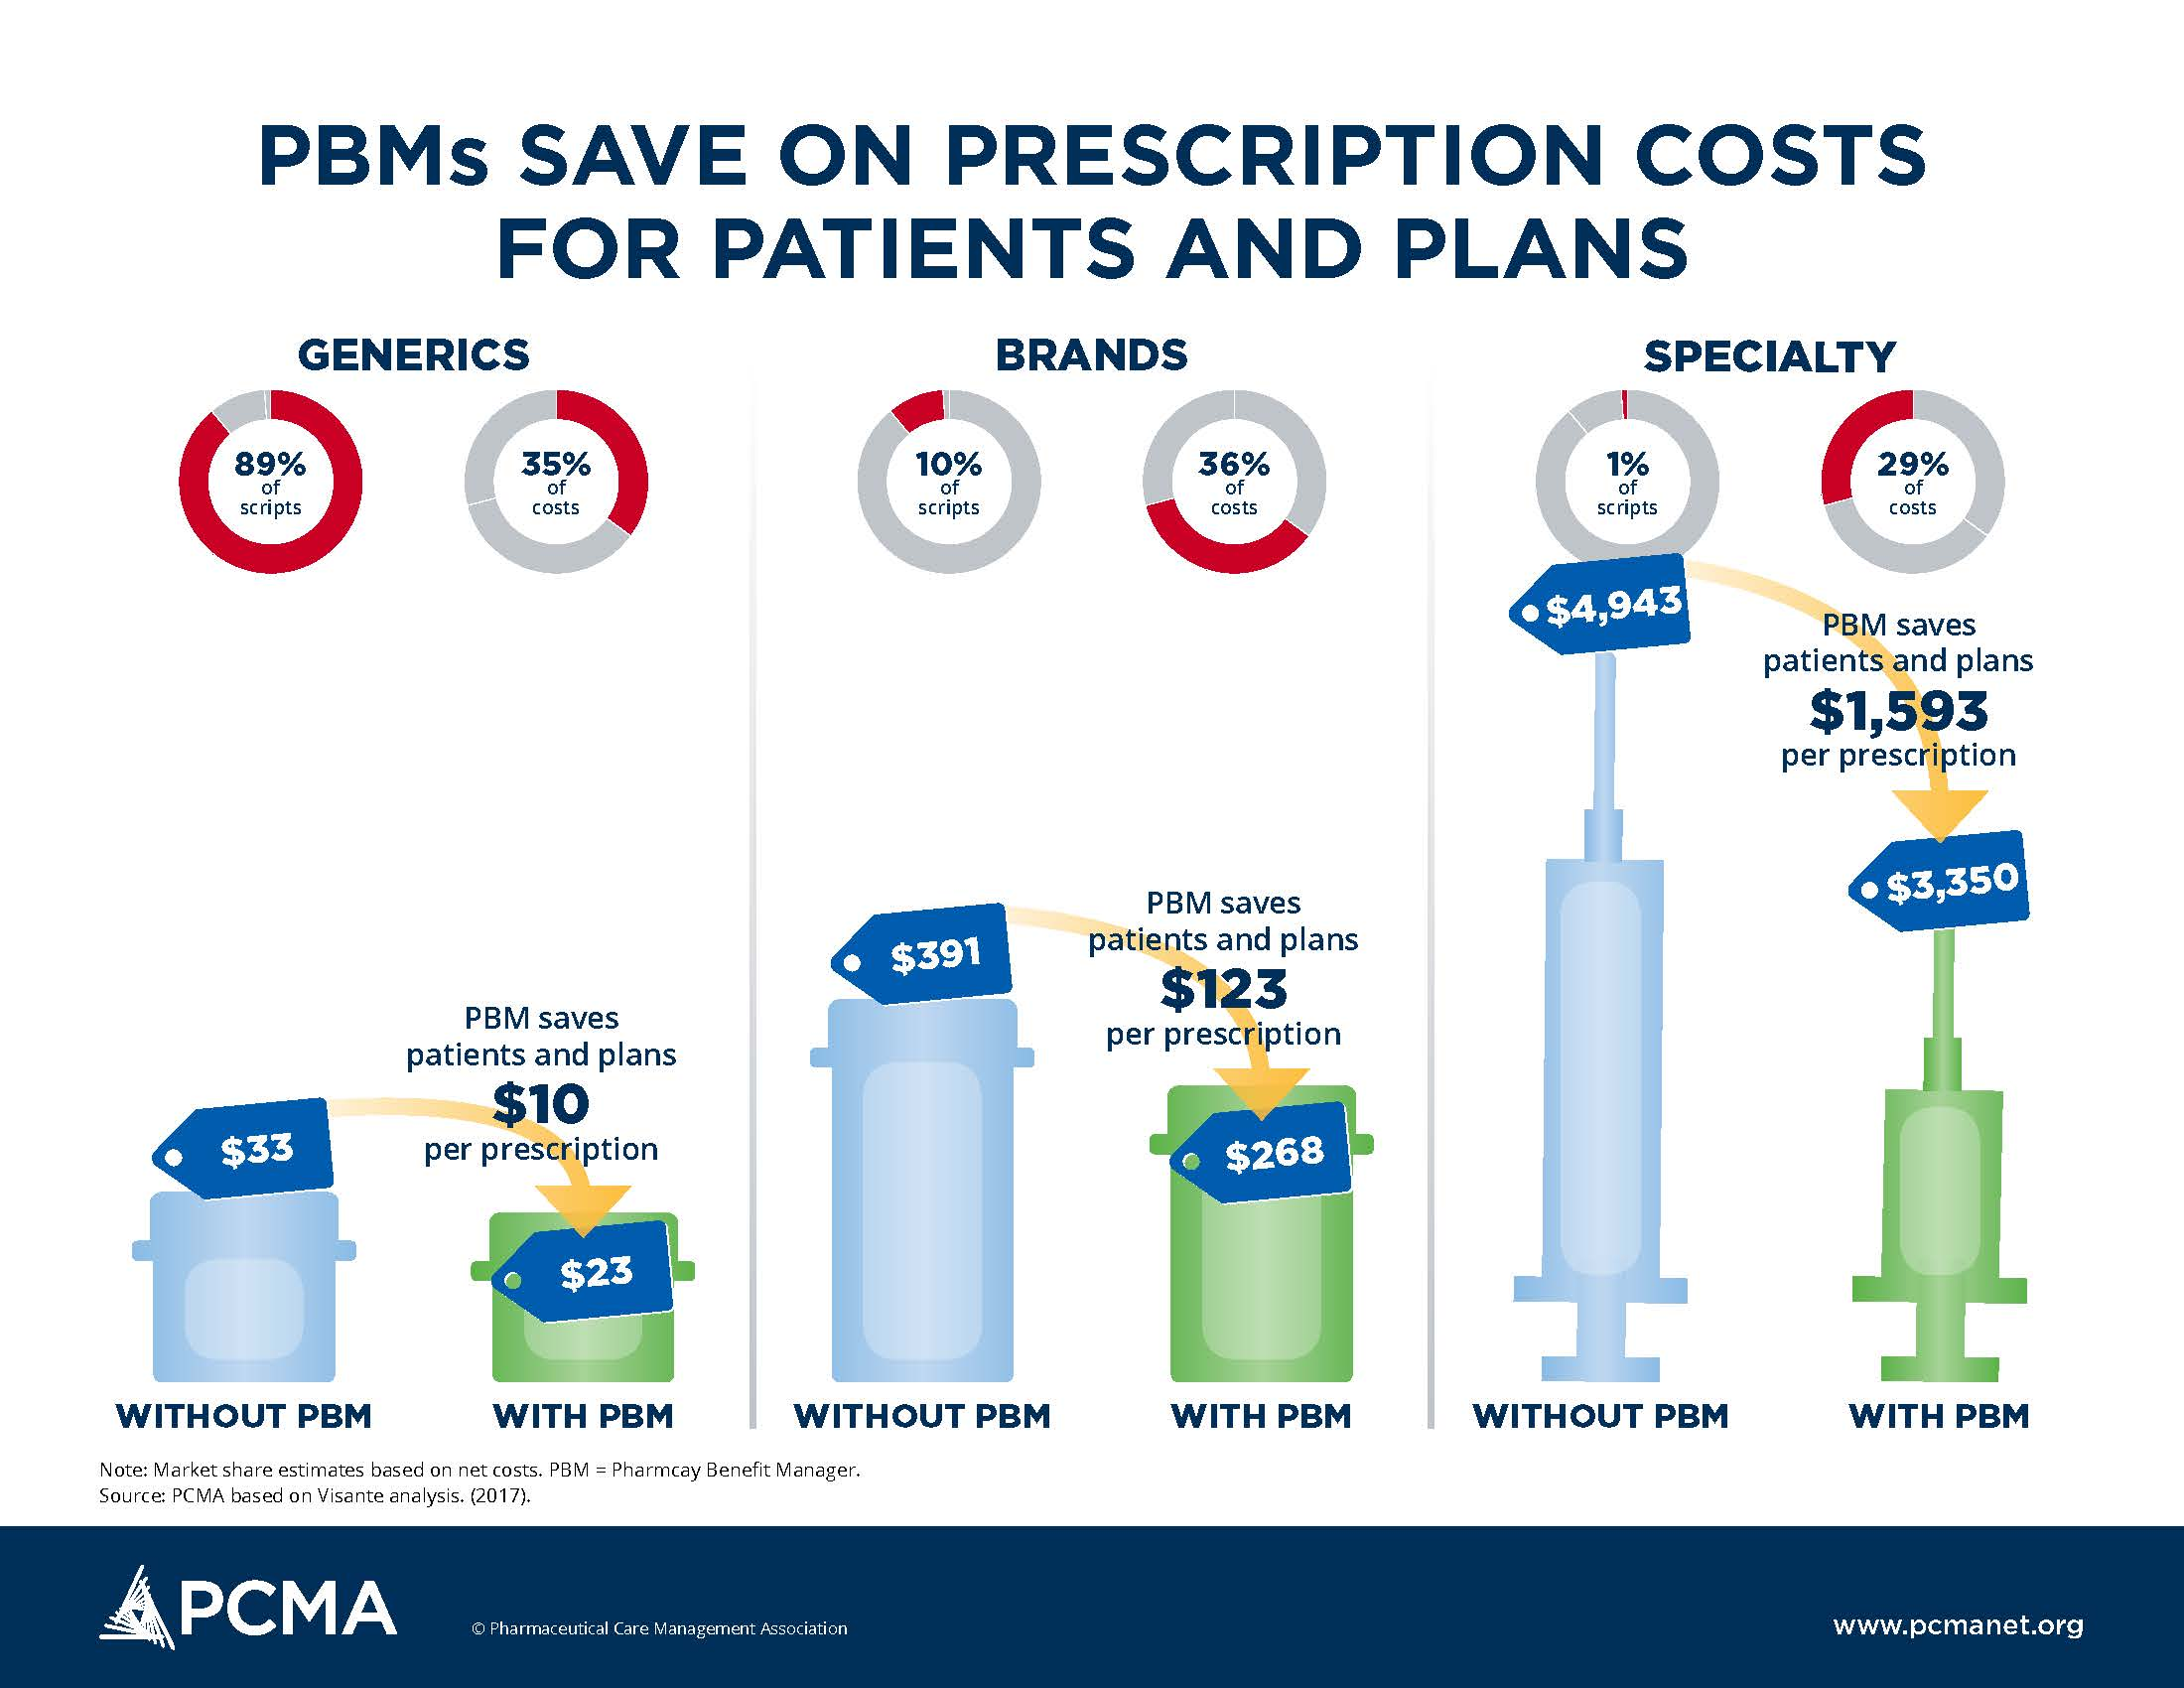 This is a one-page infographic that explains that PBMs save on prescription costs for patients and plans.